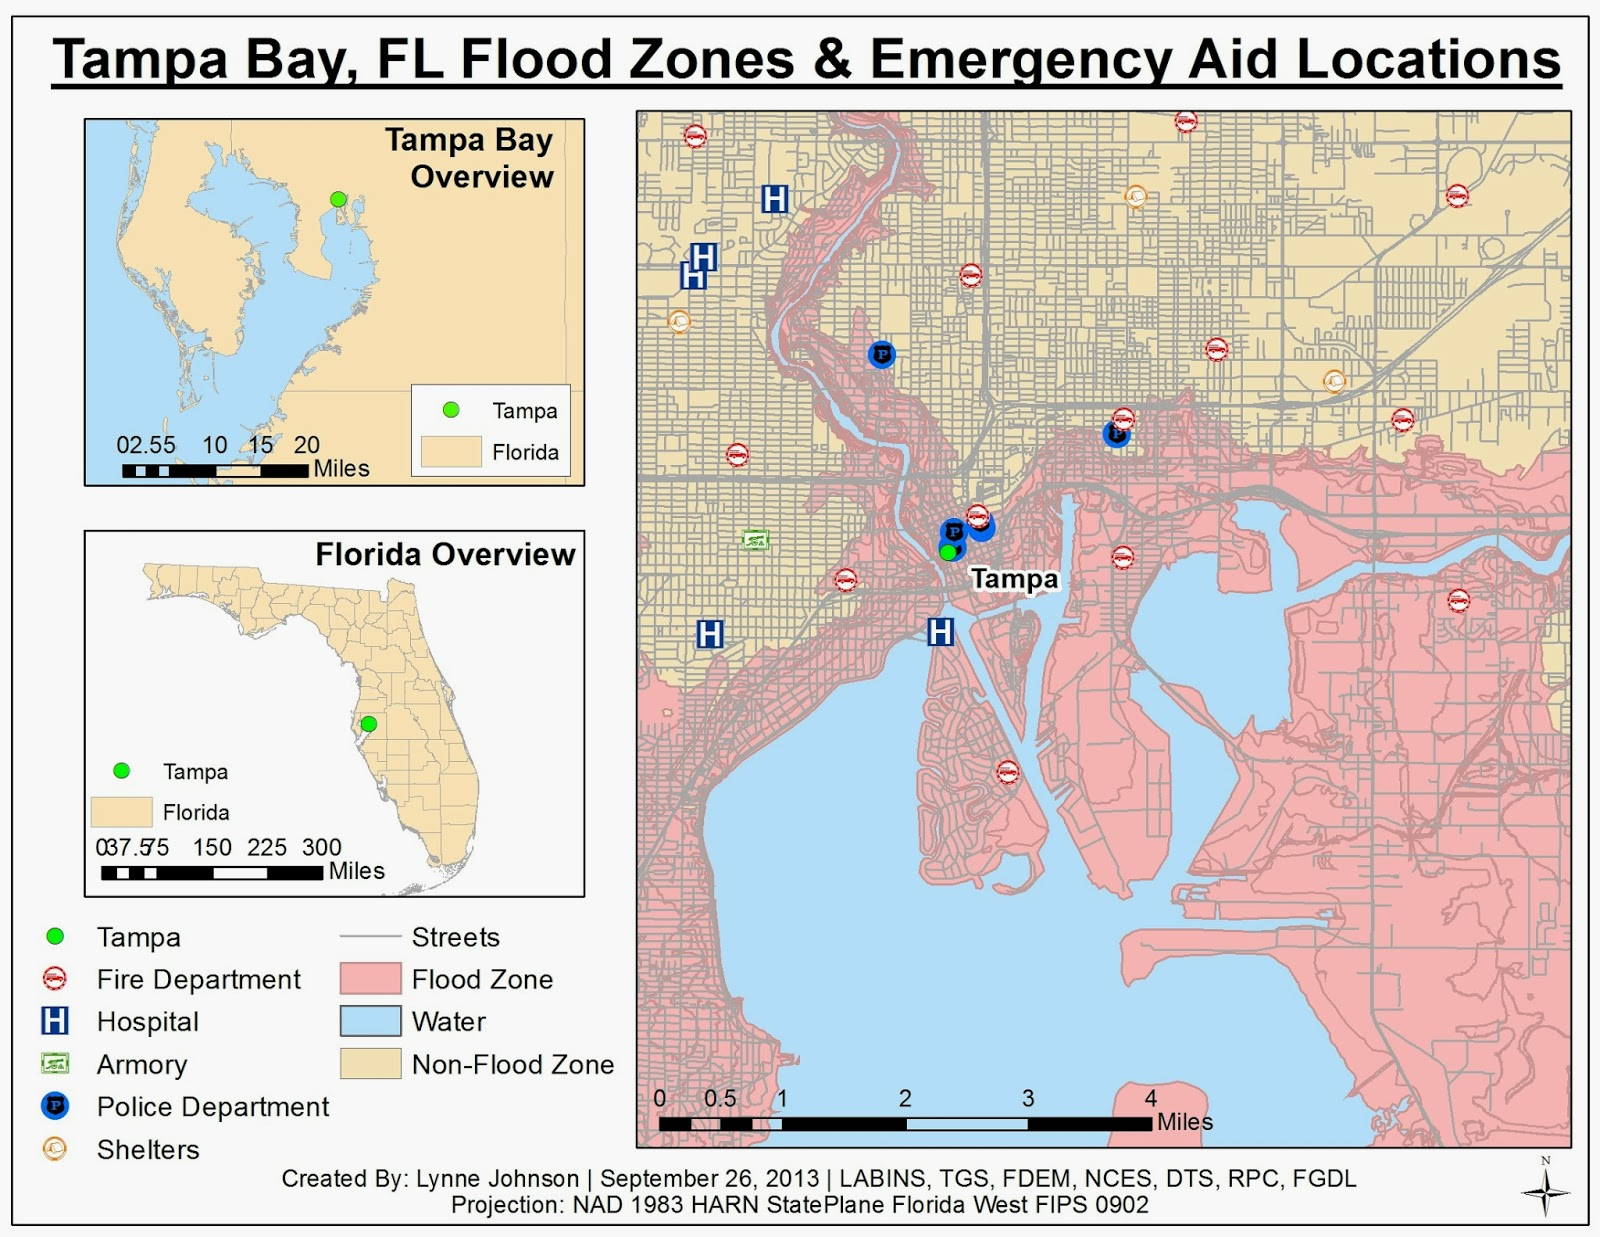 this map shows the location of flood zones in tampa bay fl as well as the locations of possible emergency aid and shelter